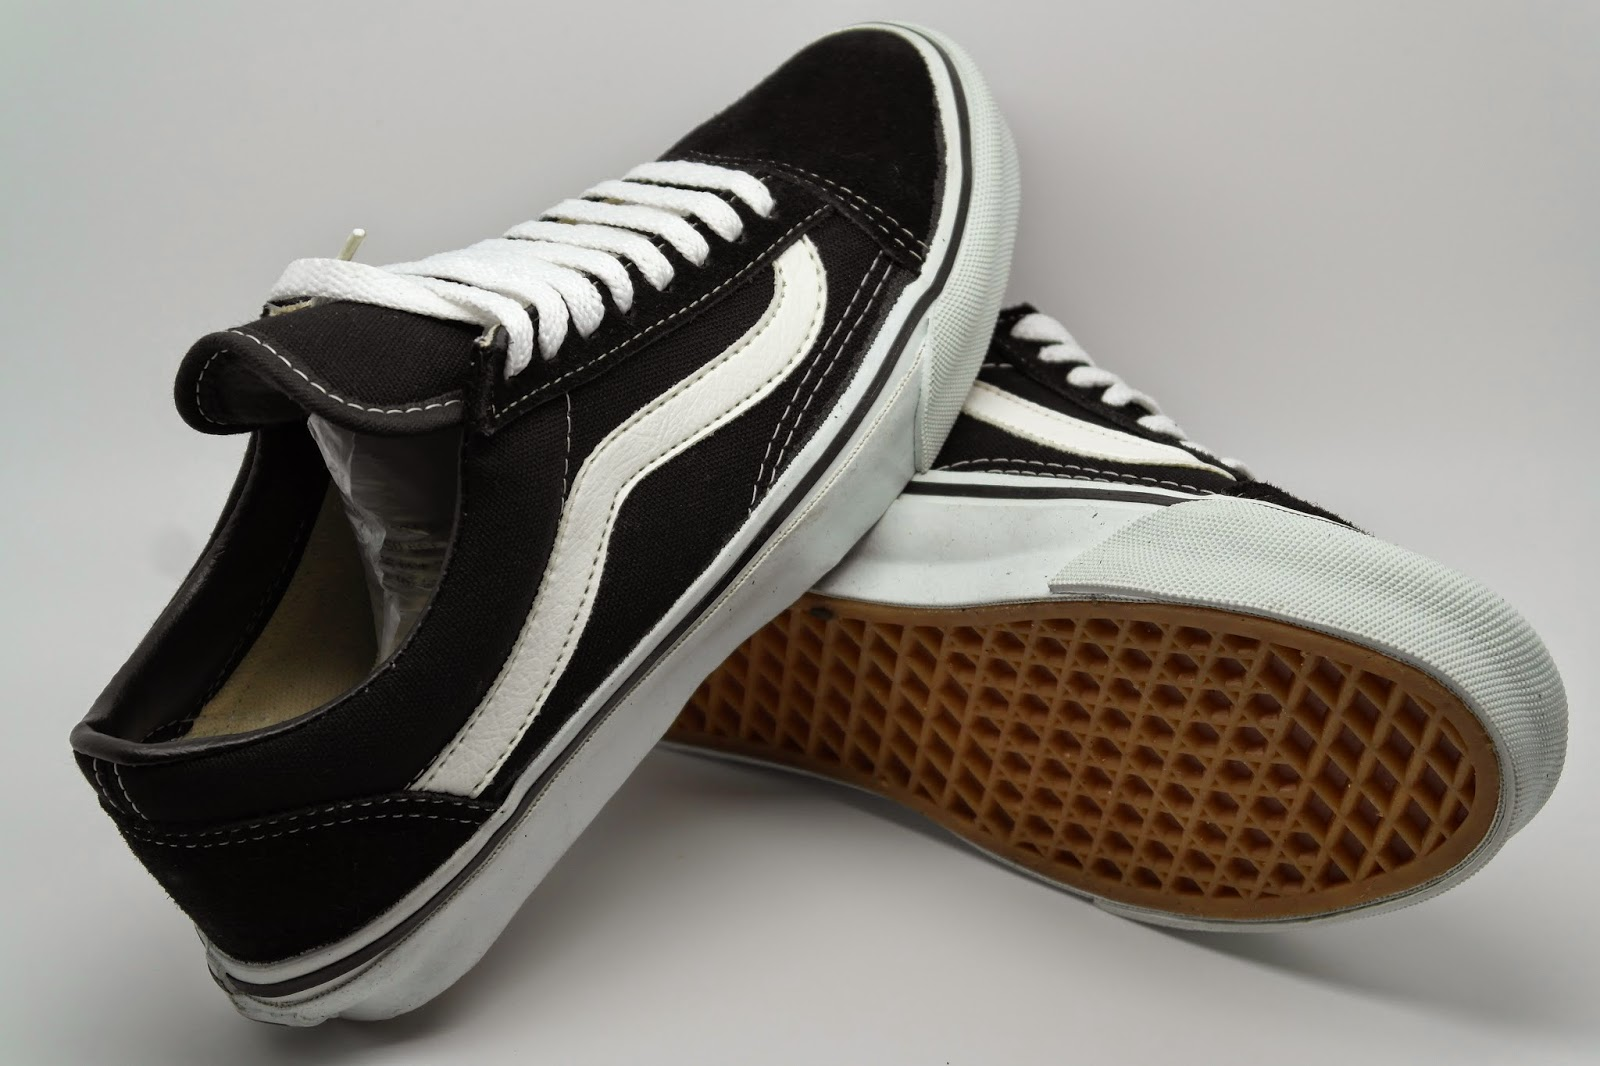 Vintage VANS Black OLD SKOOL Style 36 MADE IN USA 90s Skateboard Bmx Shoes DEADSTOCK US7 US12